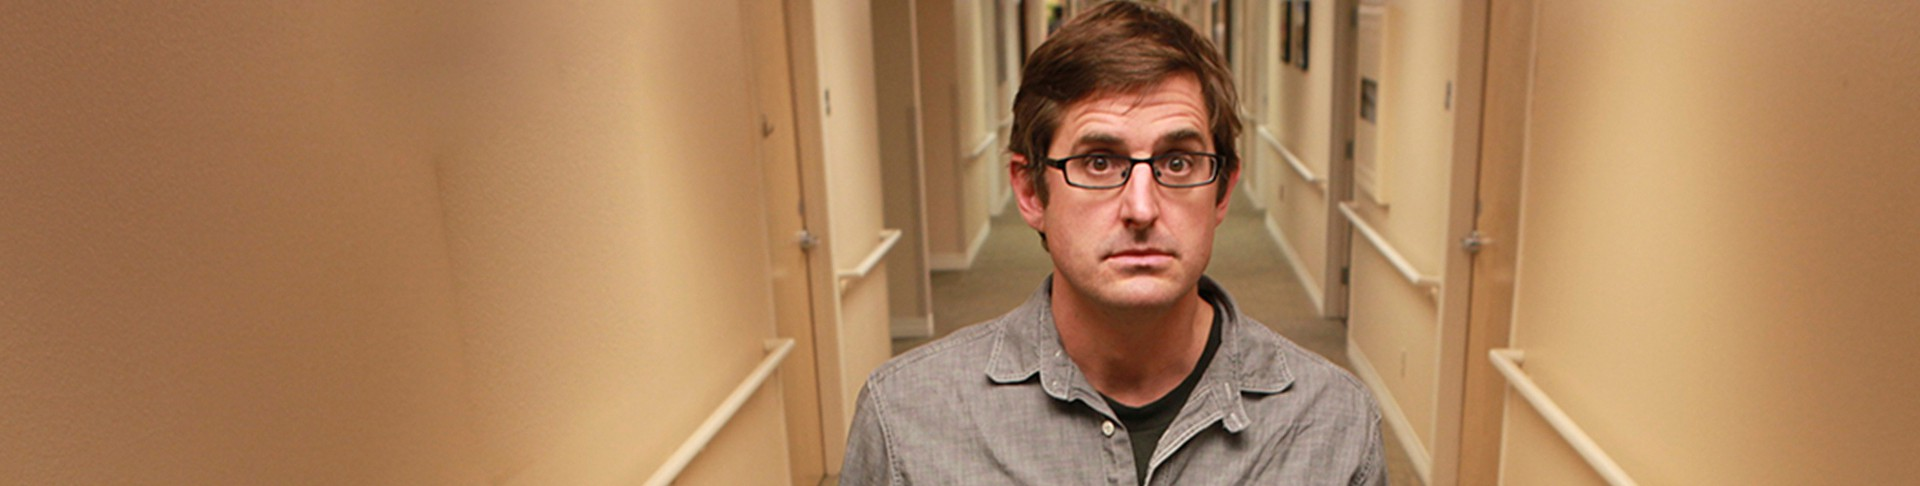 Louis Theroux: Extreme Love - Dementia